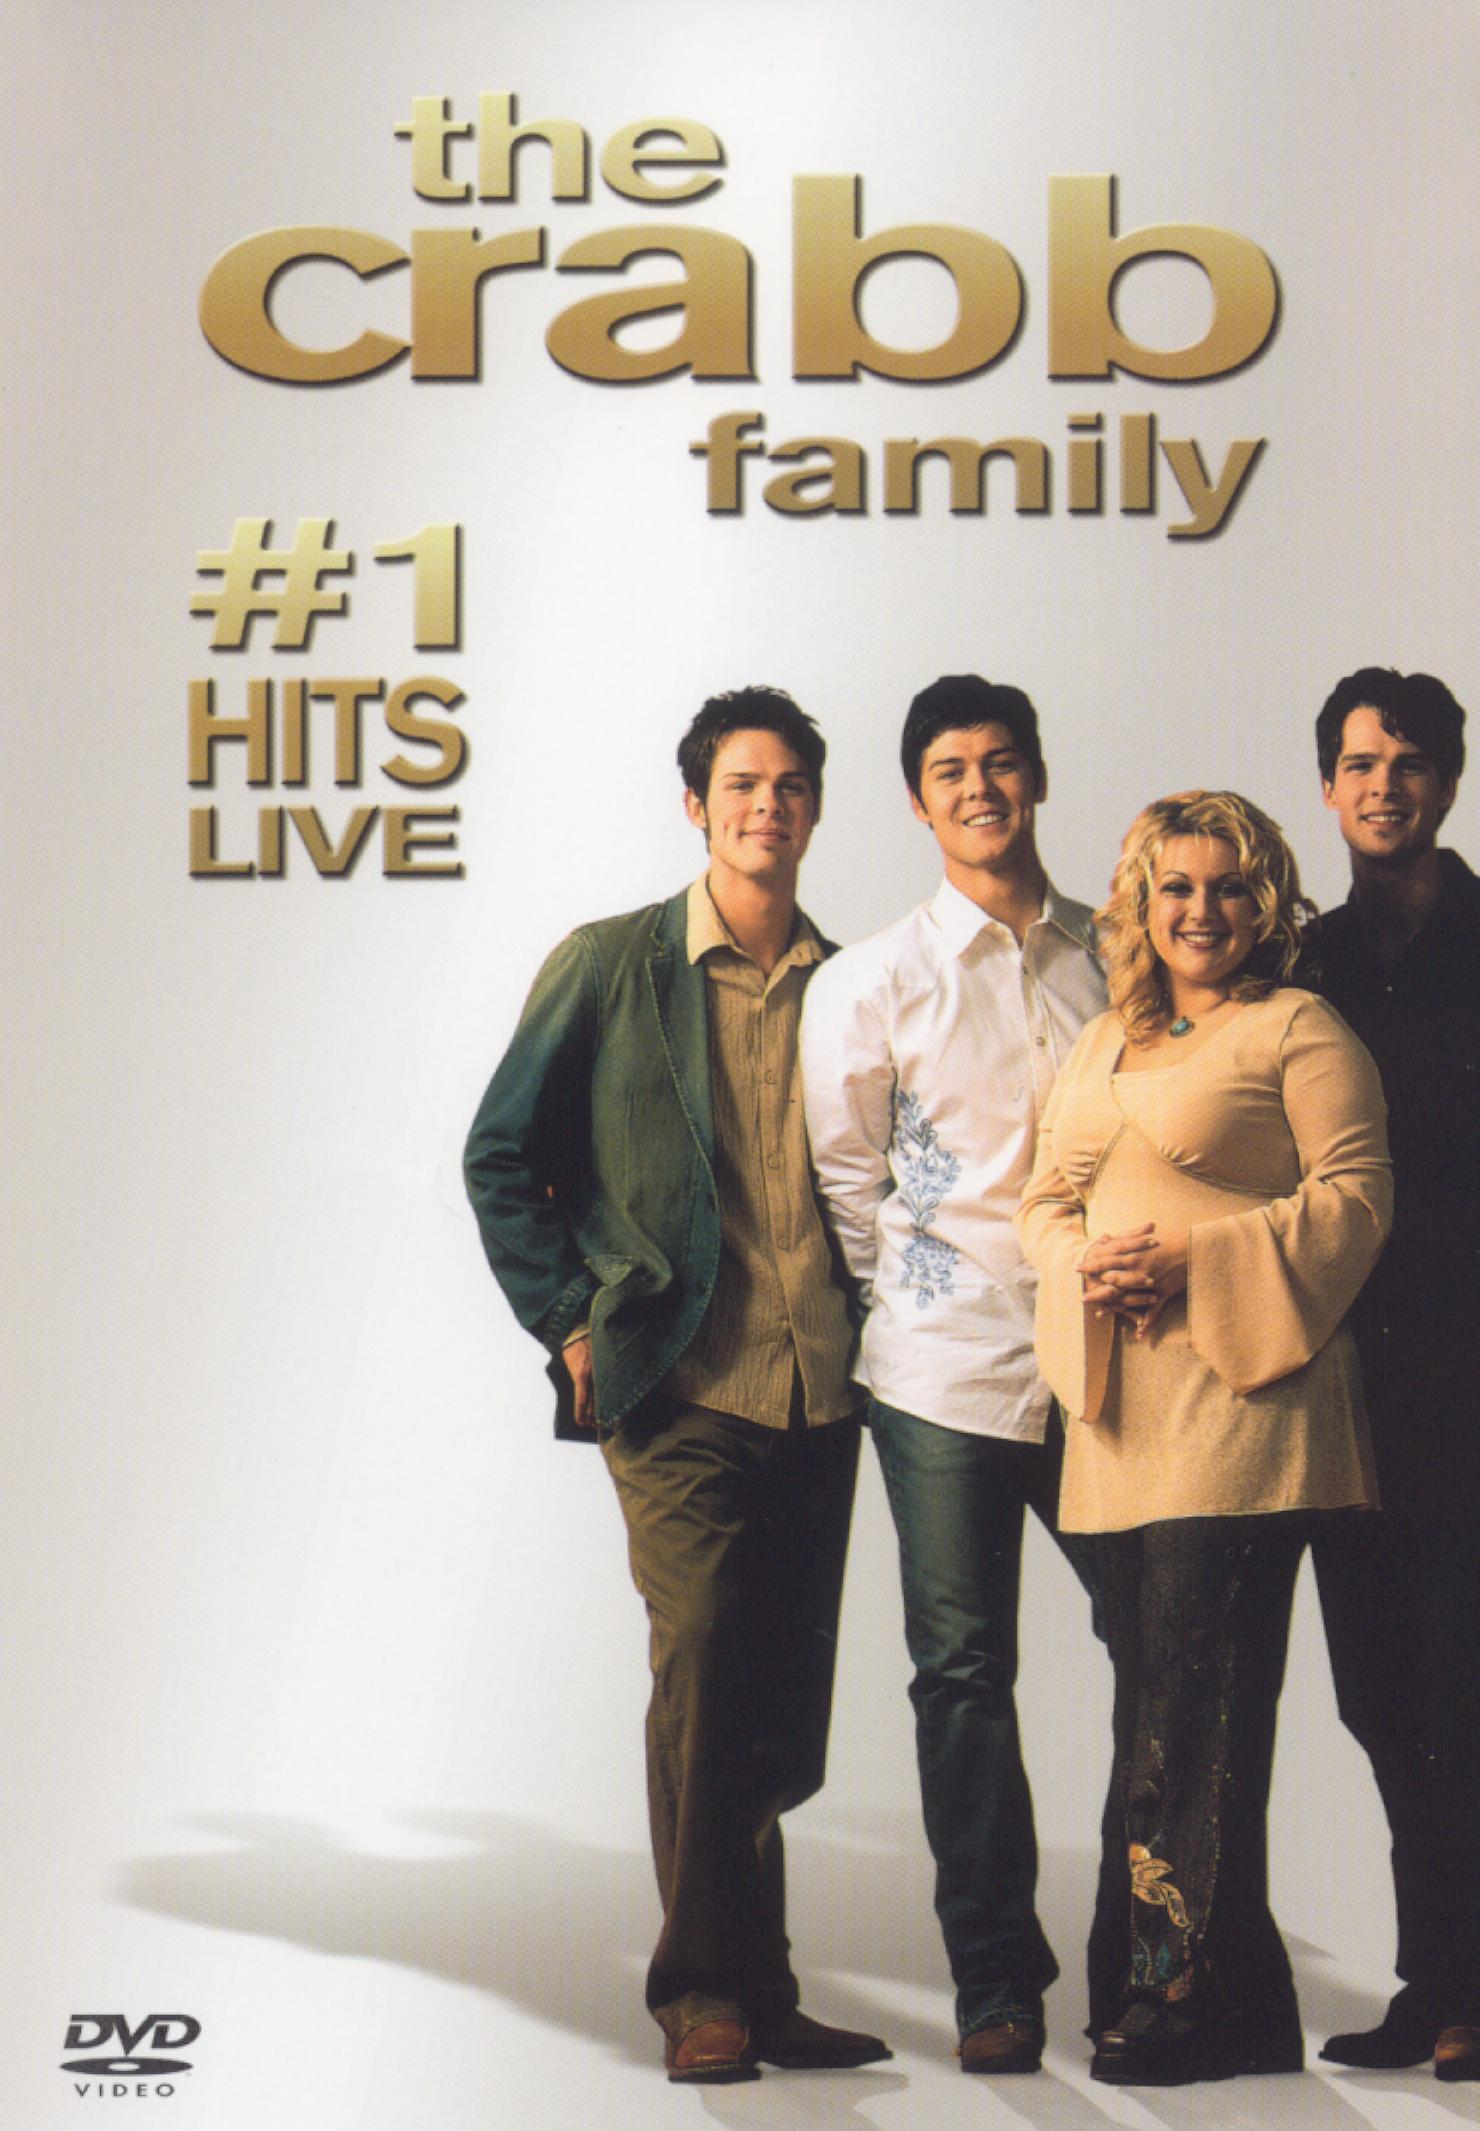 The Crabb Family: #1 Hits Live!